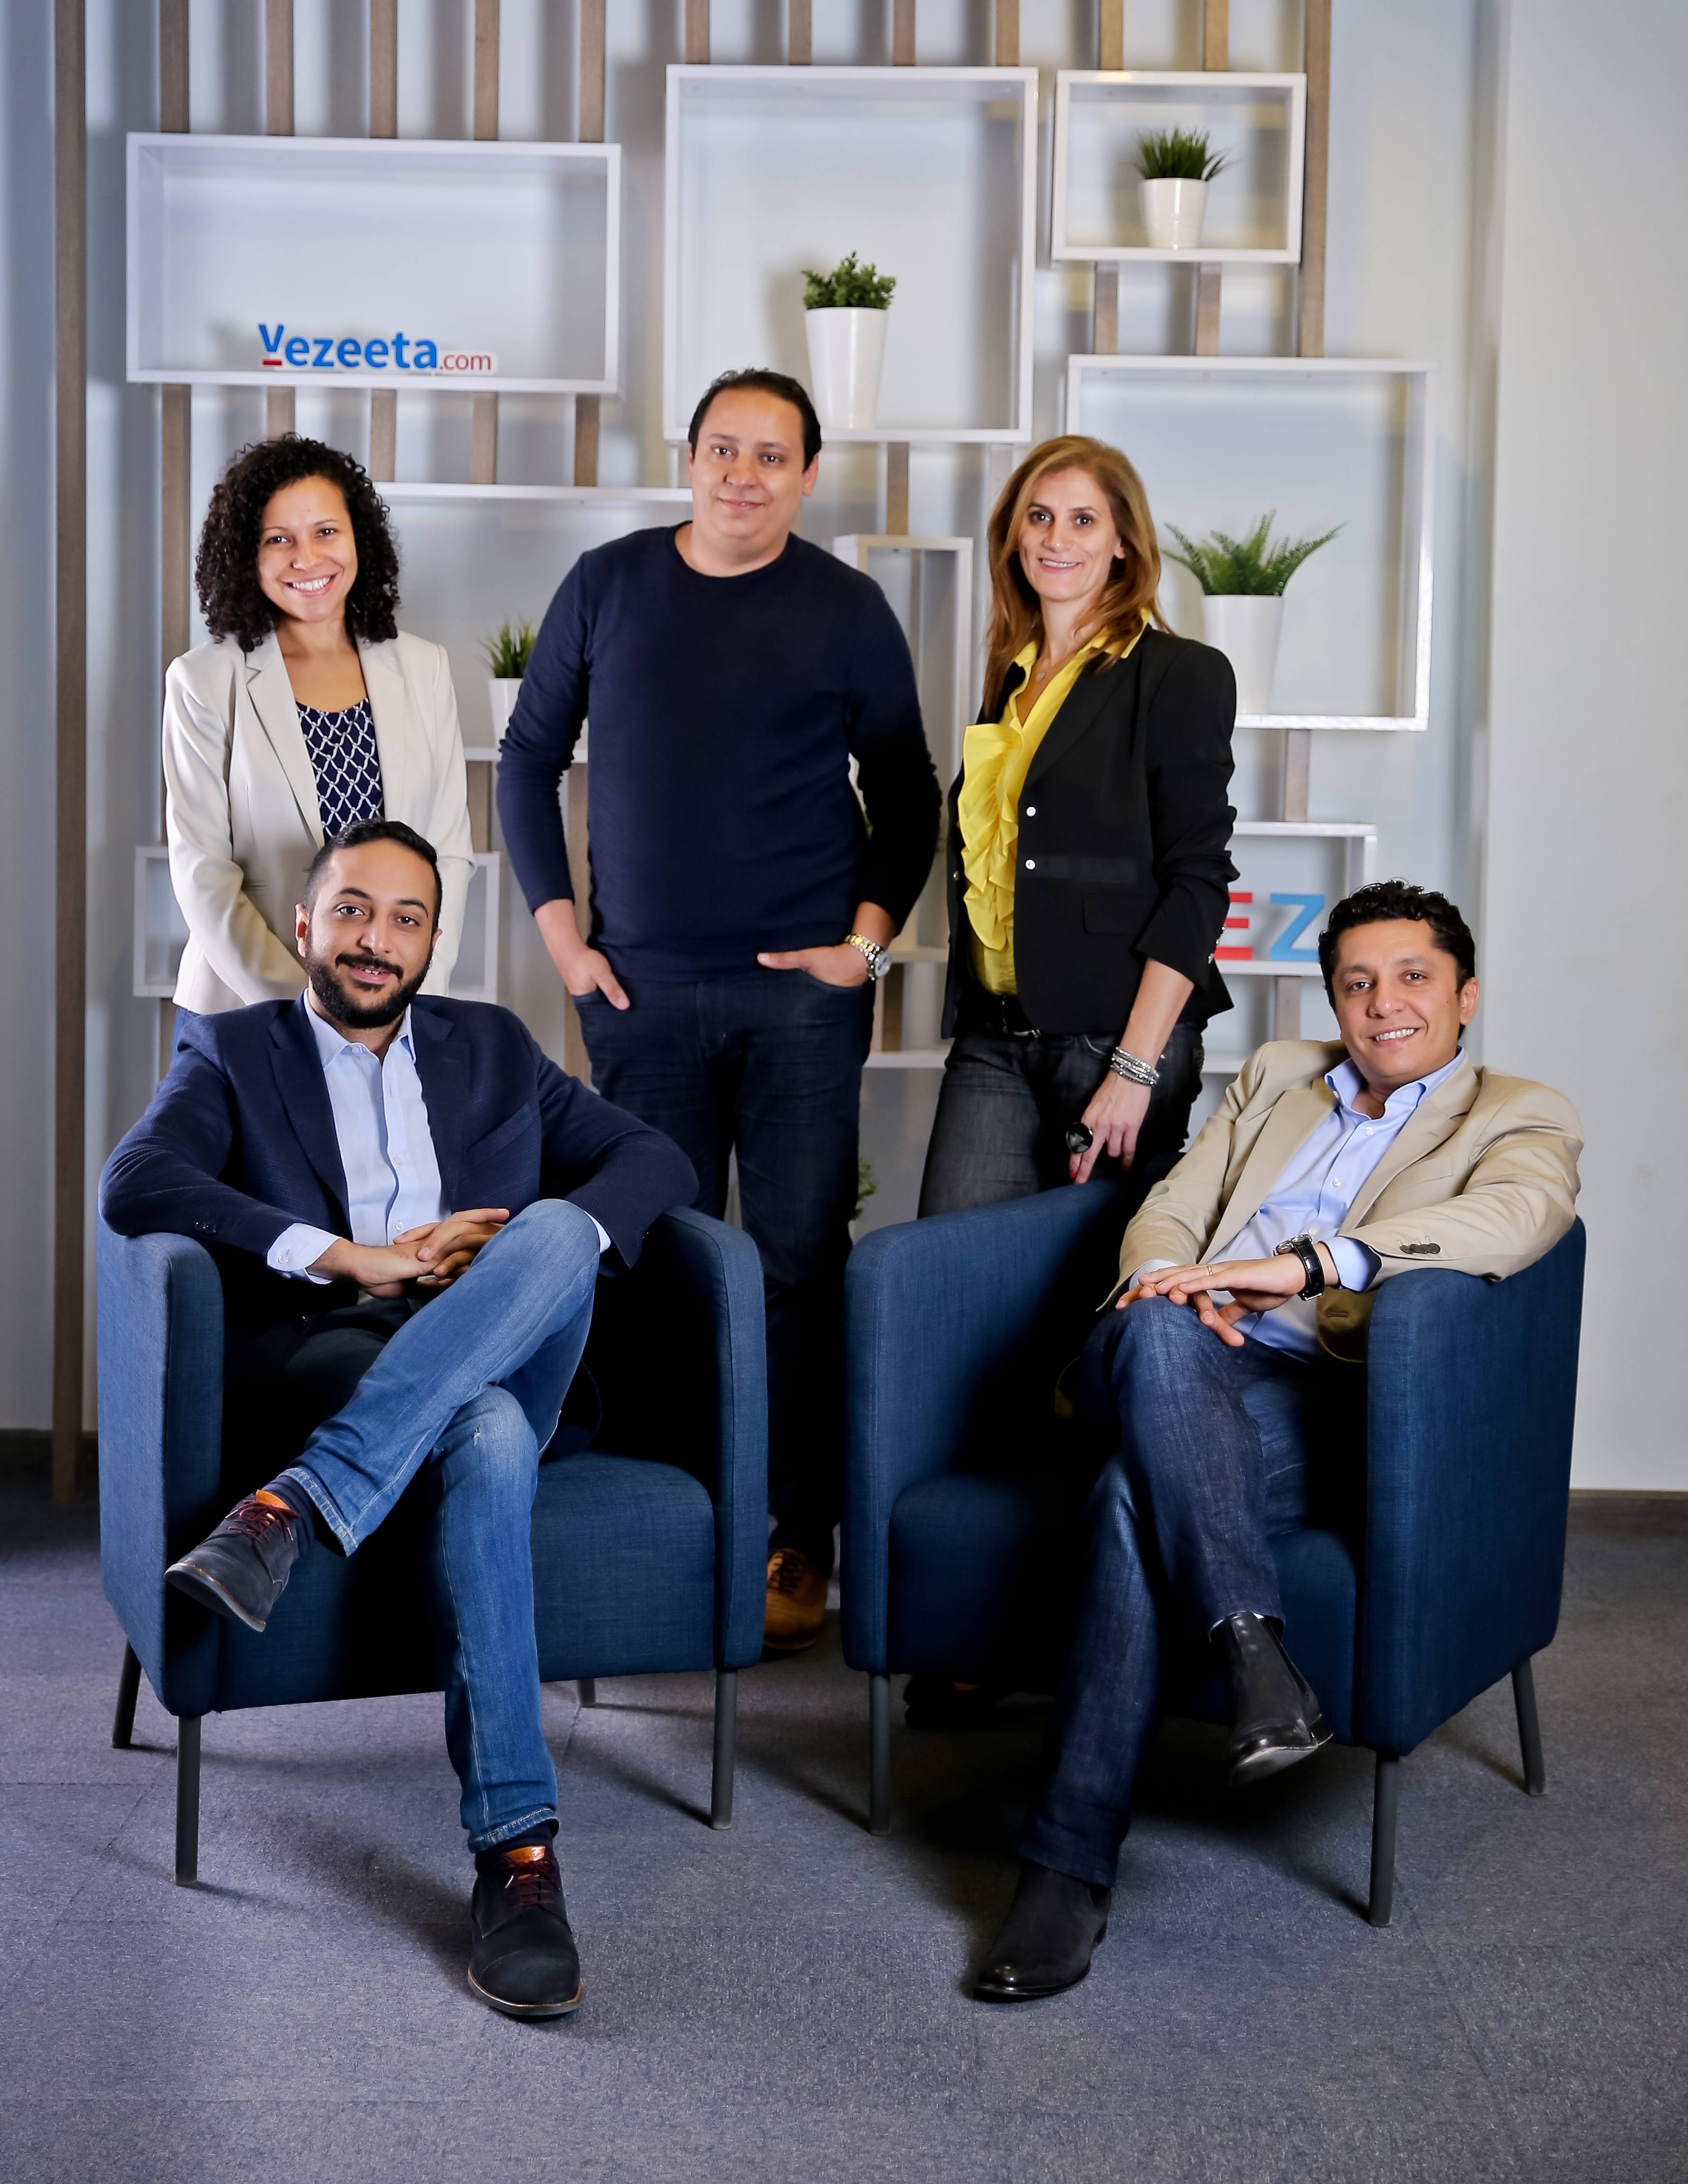 Vezeeta, MENA's health-tech start-up, disrupts the funding landscape once again with an investment from IFC